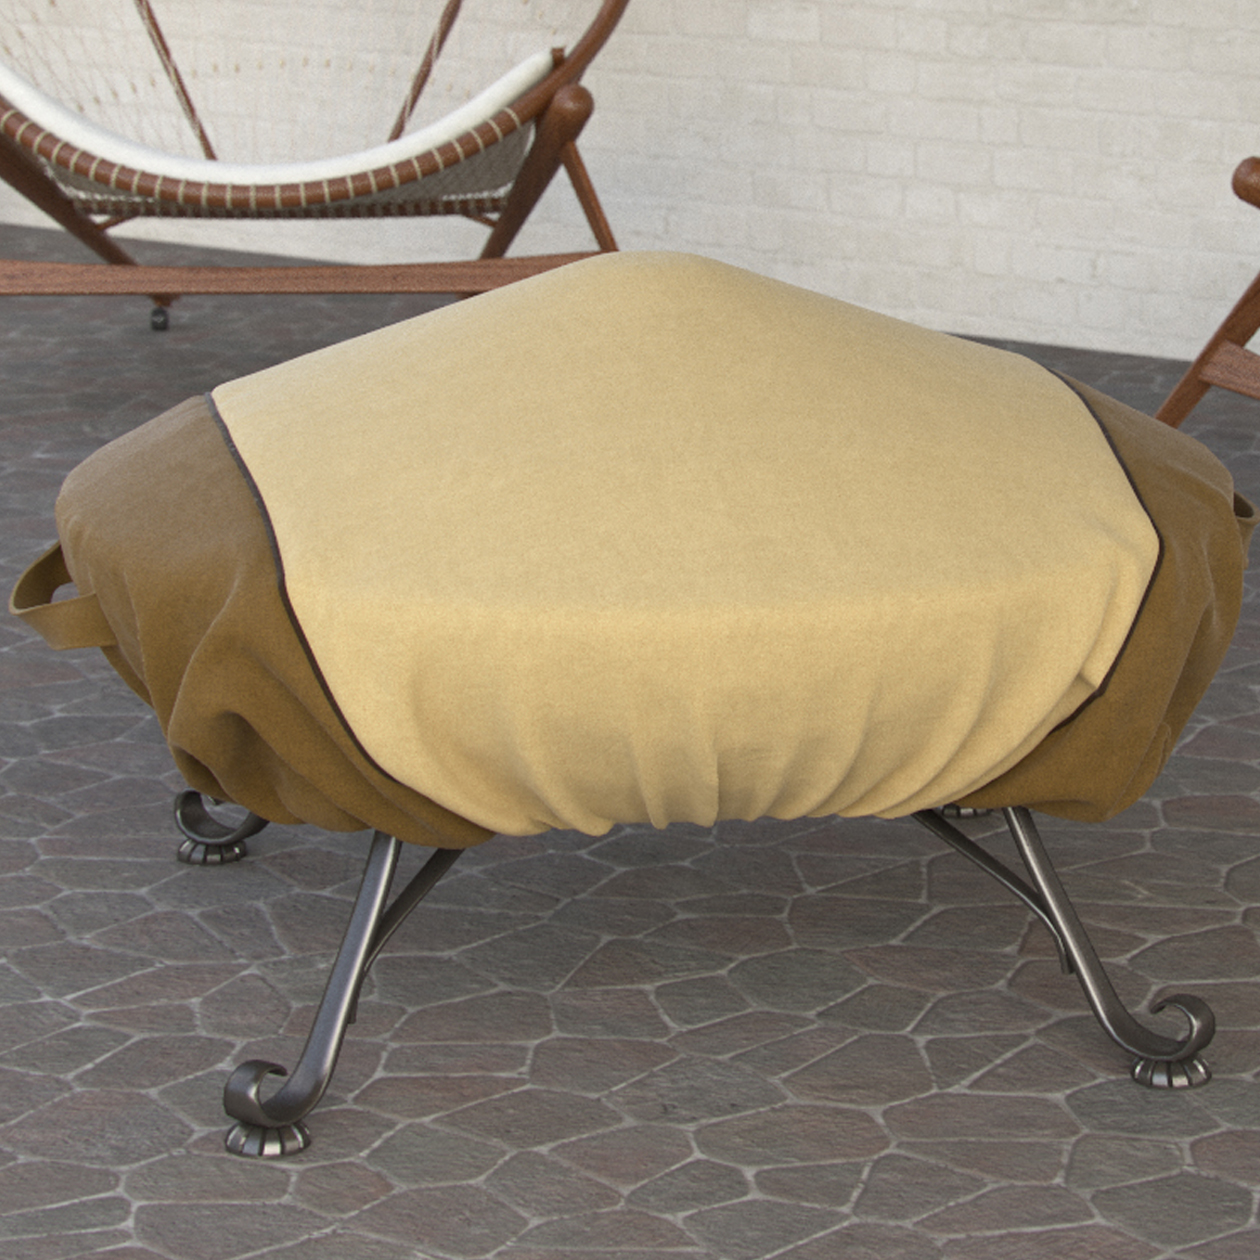 Large Dura Covers Fade Proof Tane 44 Heavy Duty Round Fire Pit Cover Durable and Water Resistant Firepit Cover